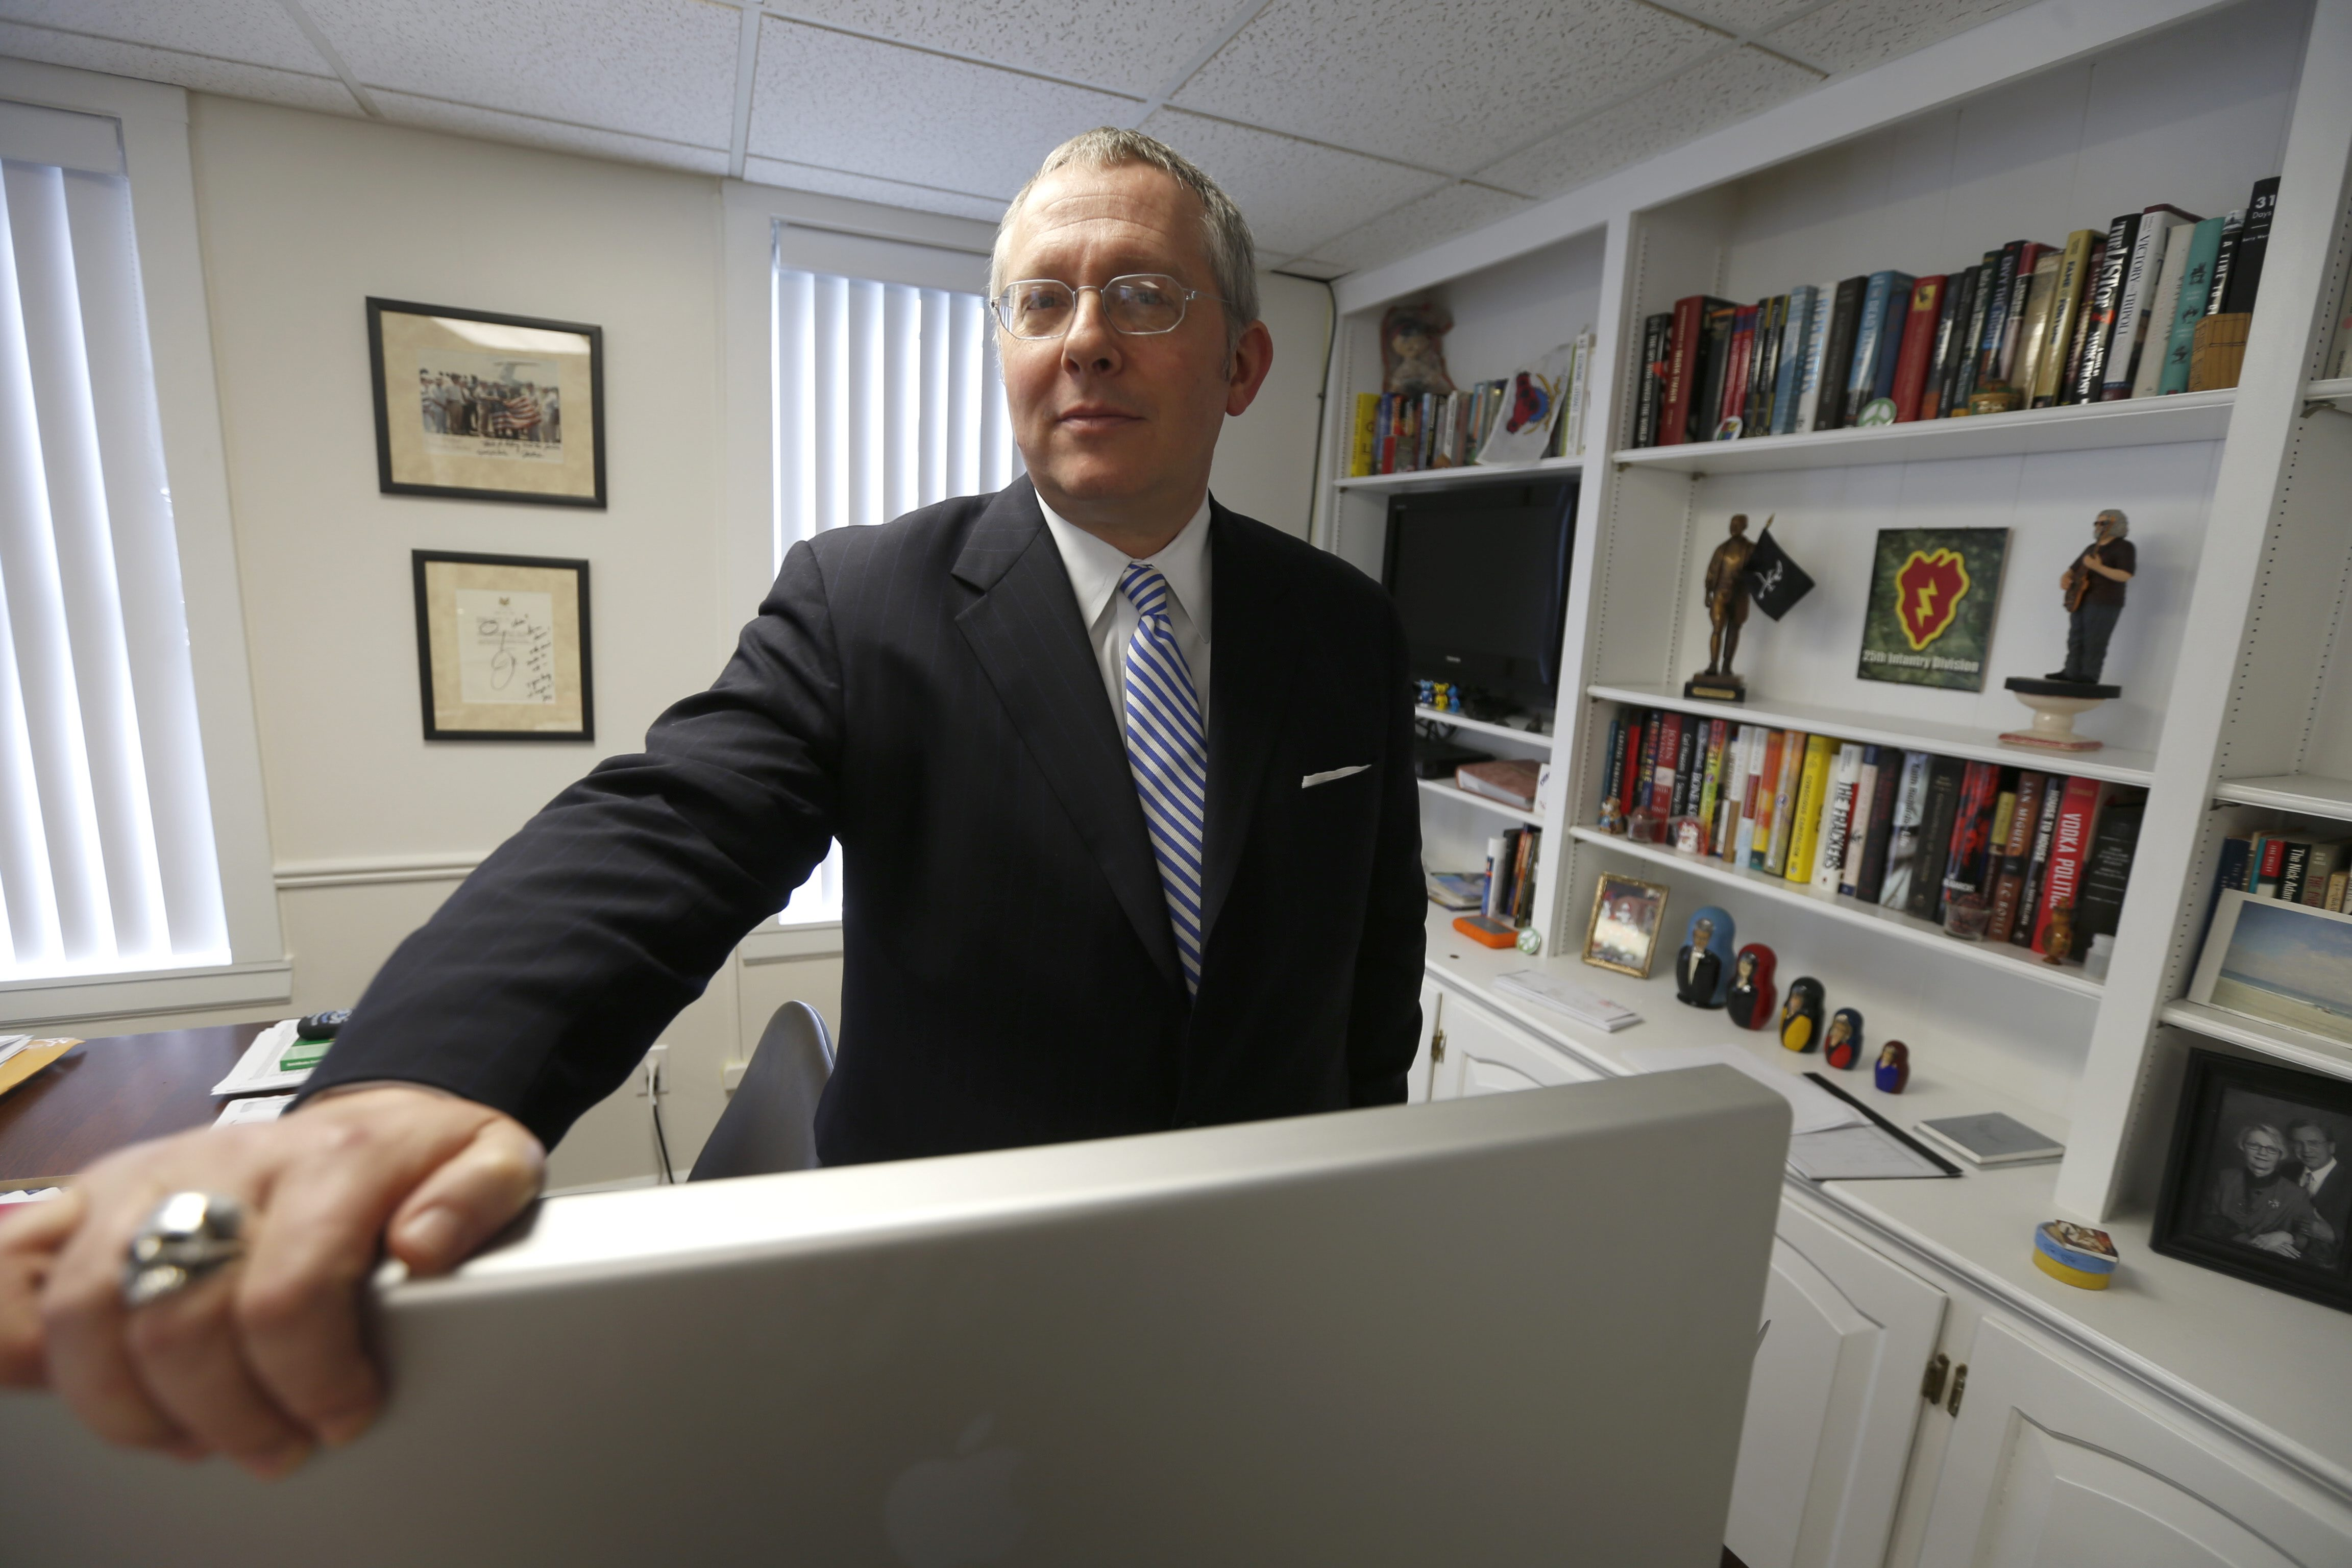 Republican political consultant Michael Caputo in his East Aurora office. (Robert Kirkham/Buffalo News)